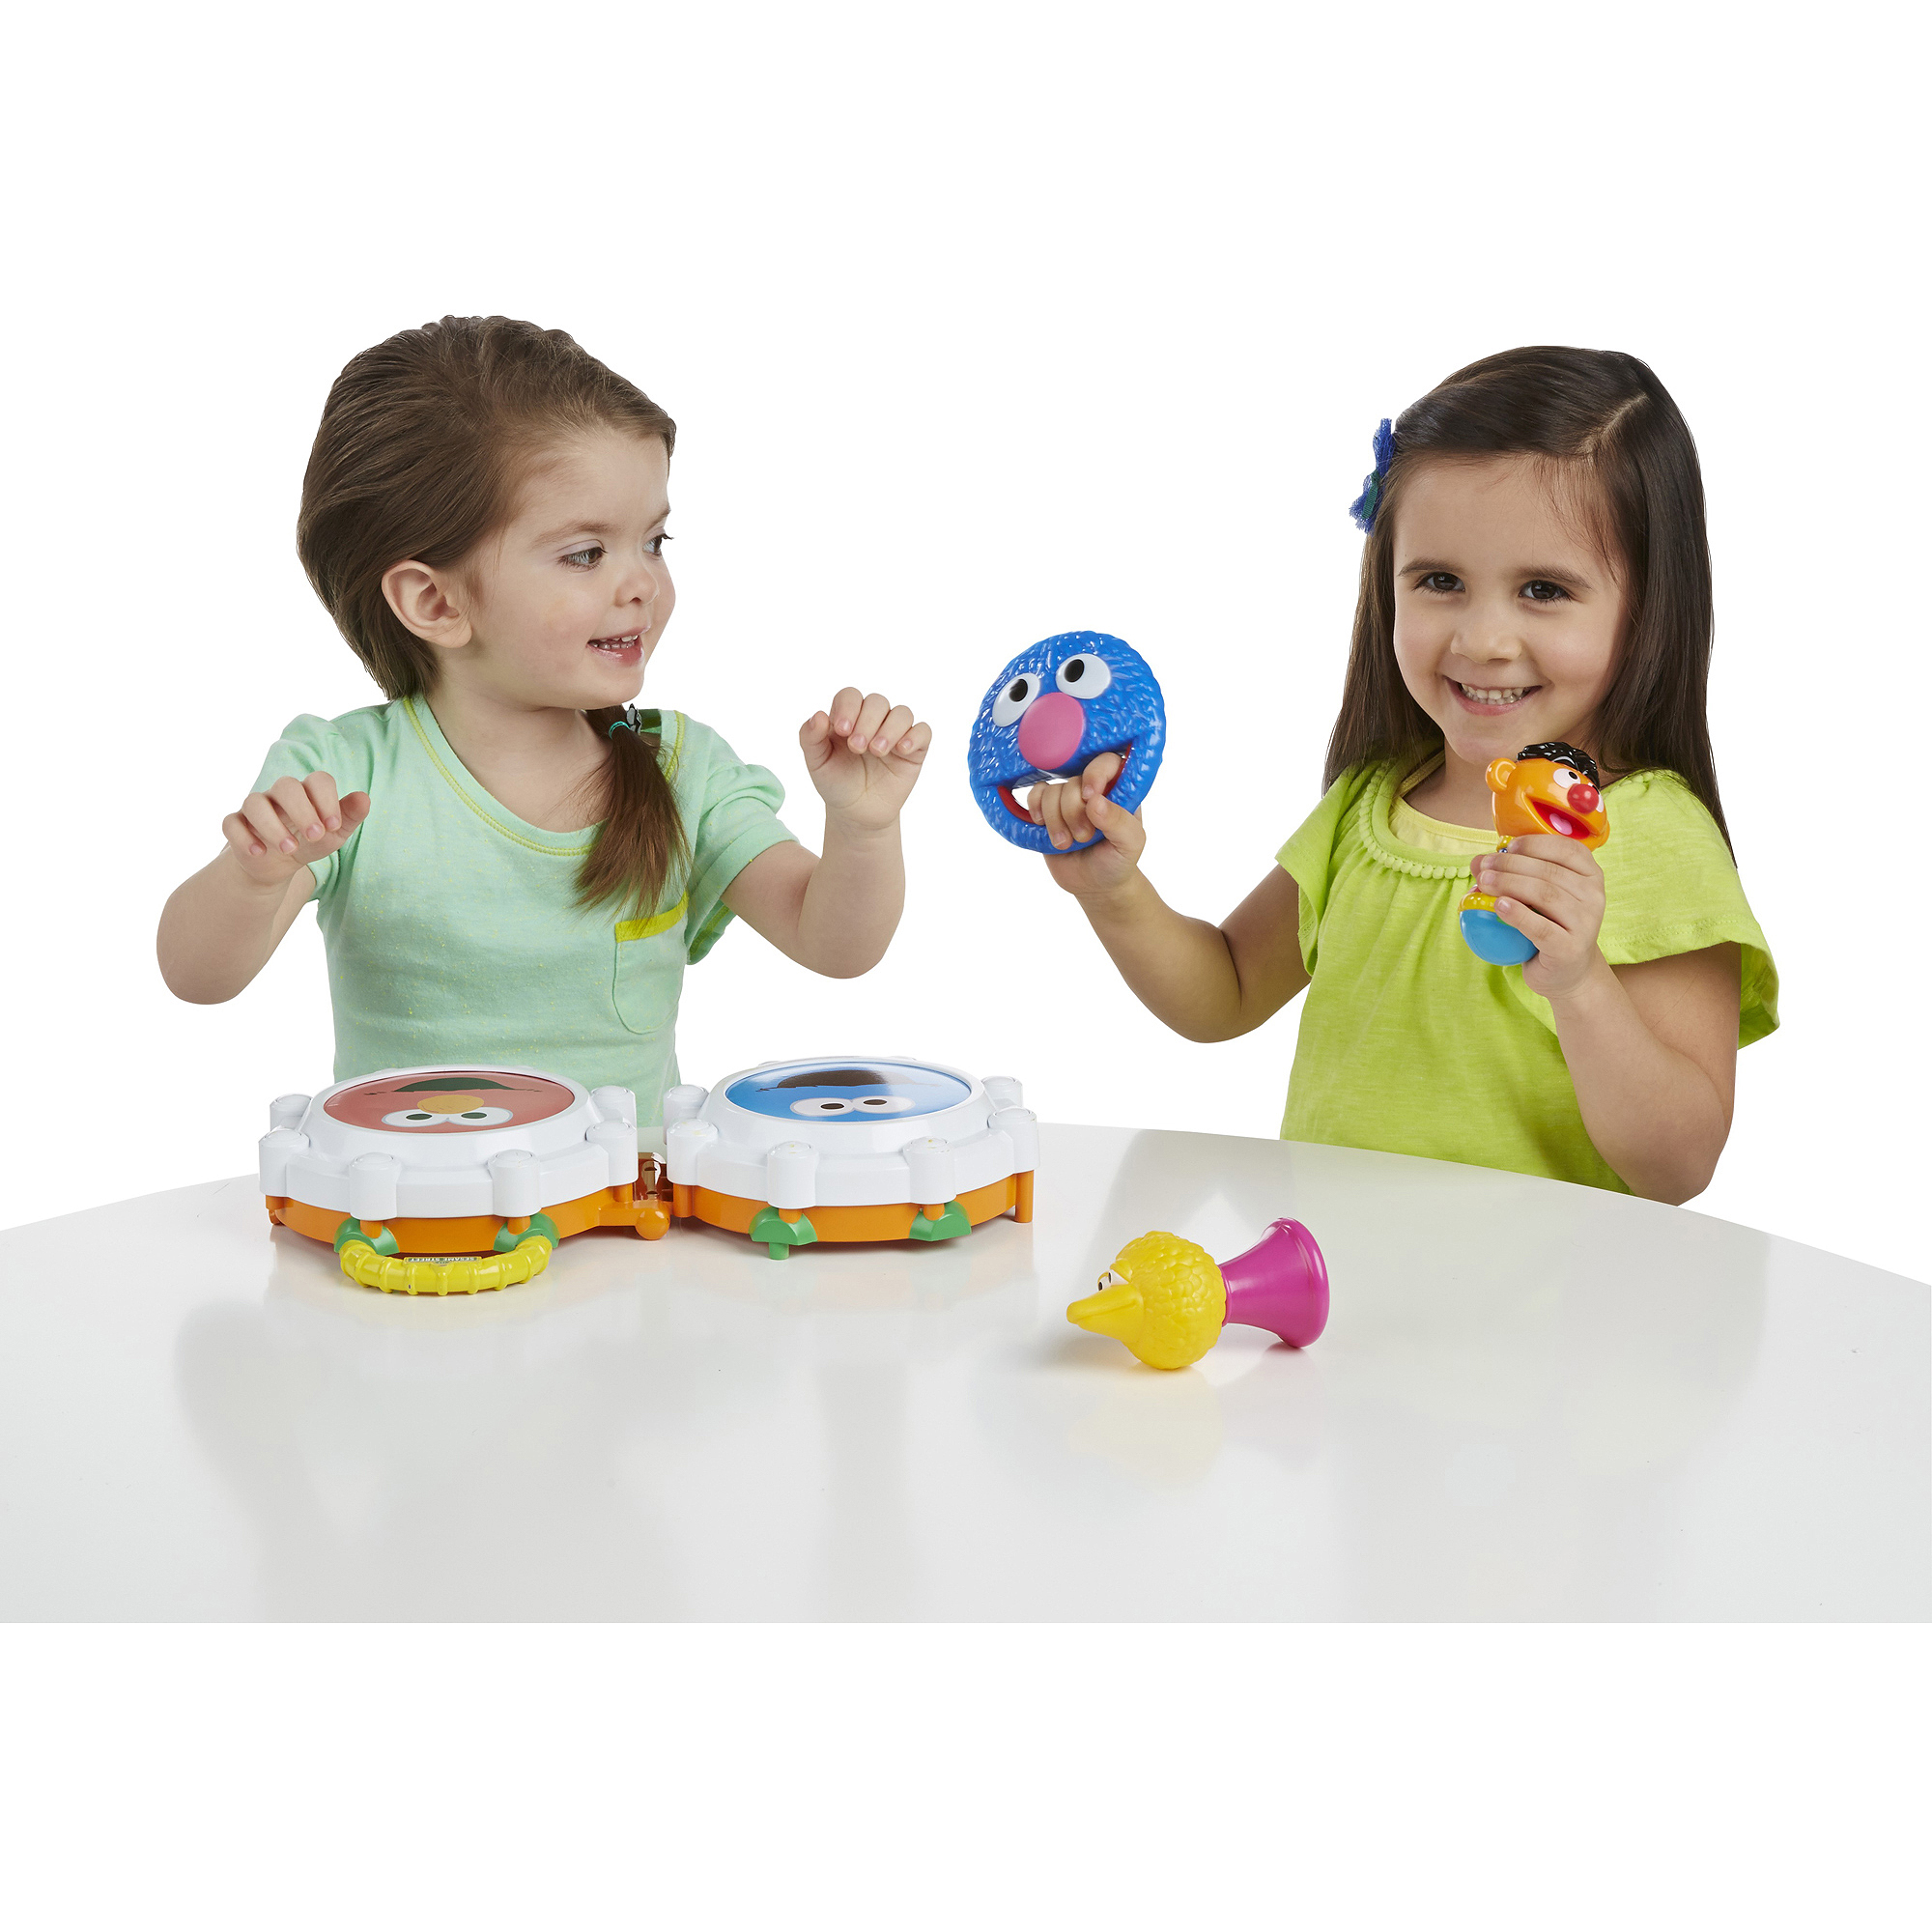 Playskool Sesame Street Take-Along Band Set